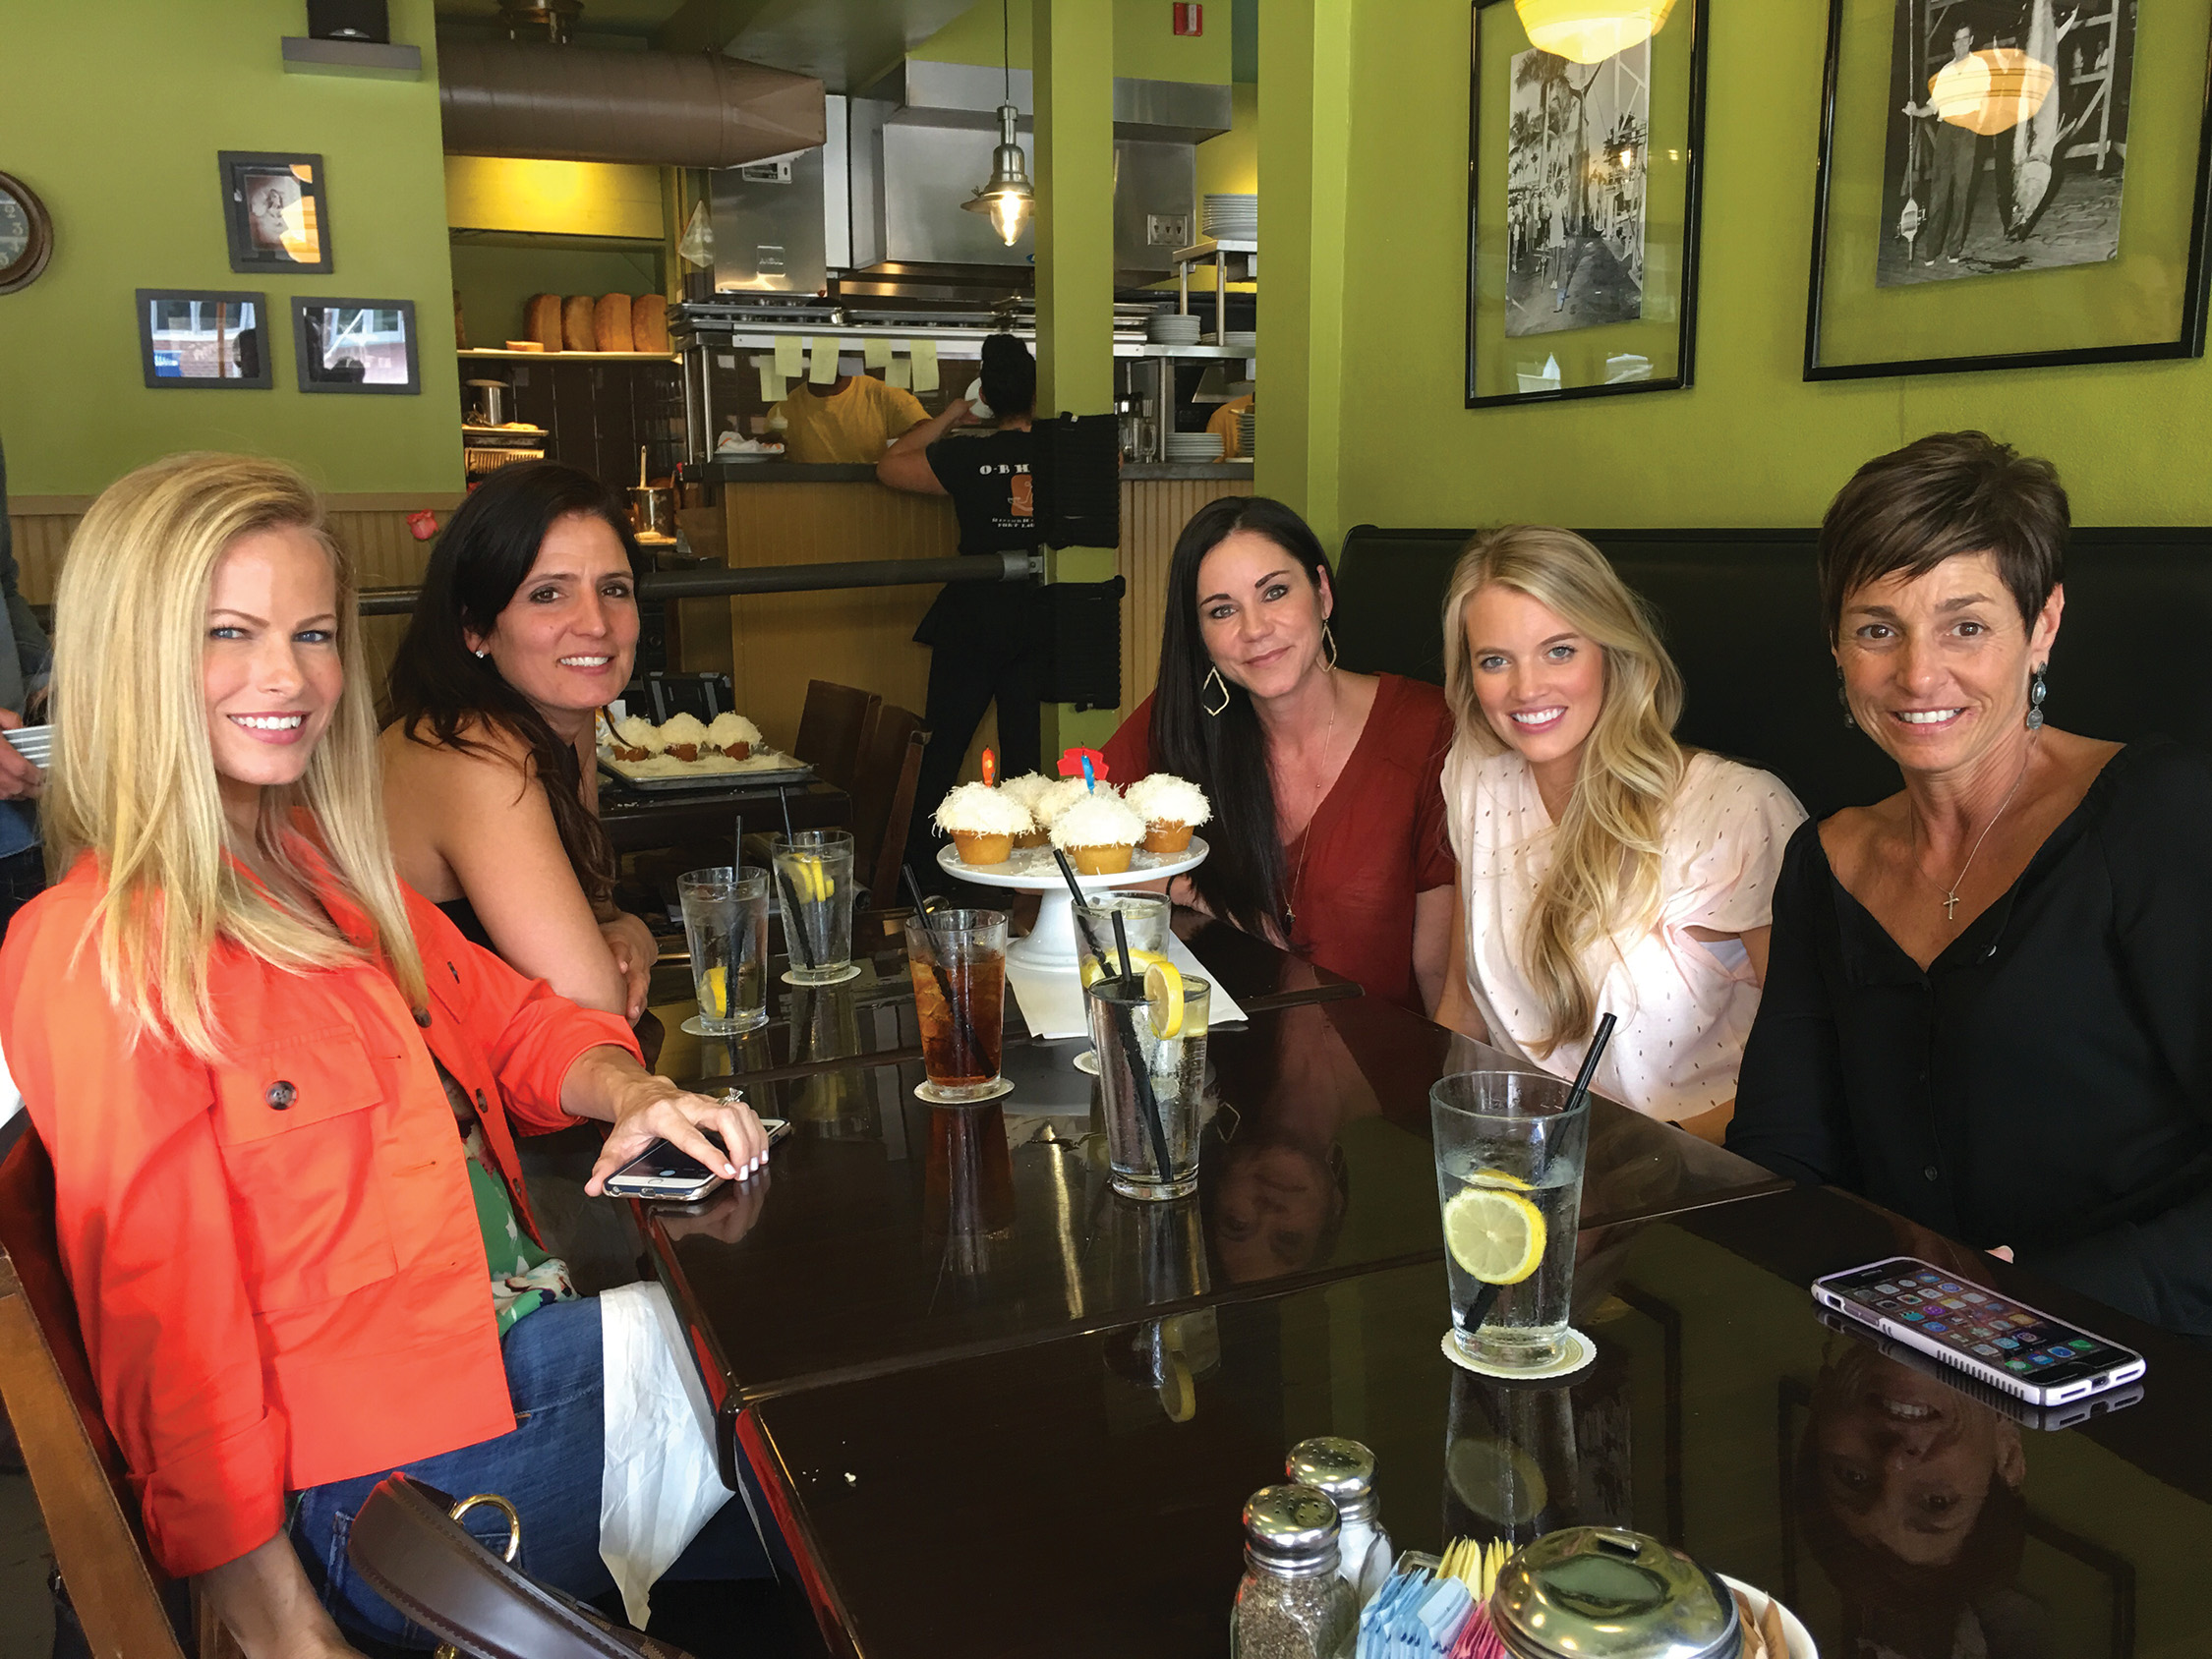 The-Seen-OB-House-Miami-Dolphins-Florida-Panthers-food-Venice-Magazine-Rodney-Ely